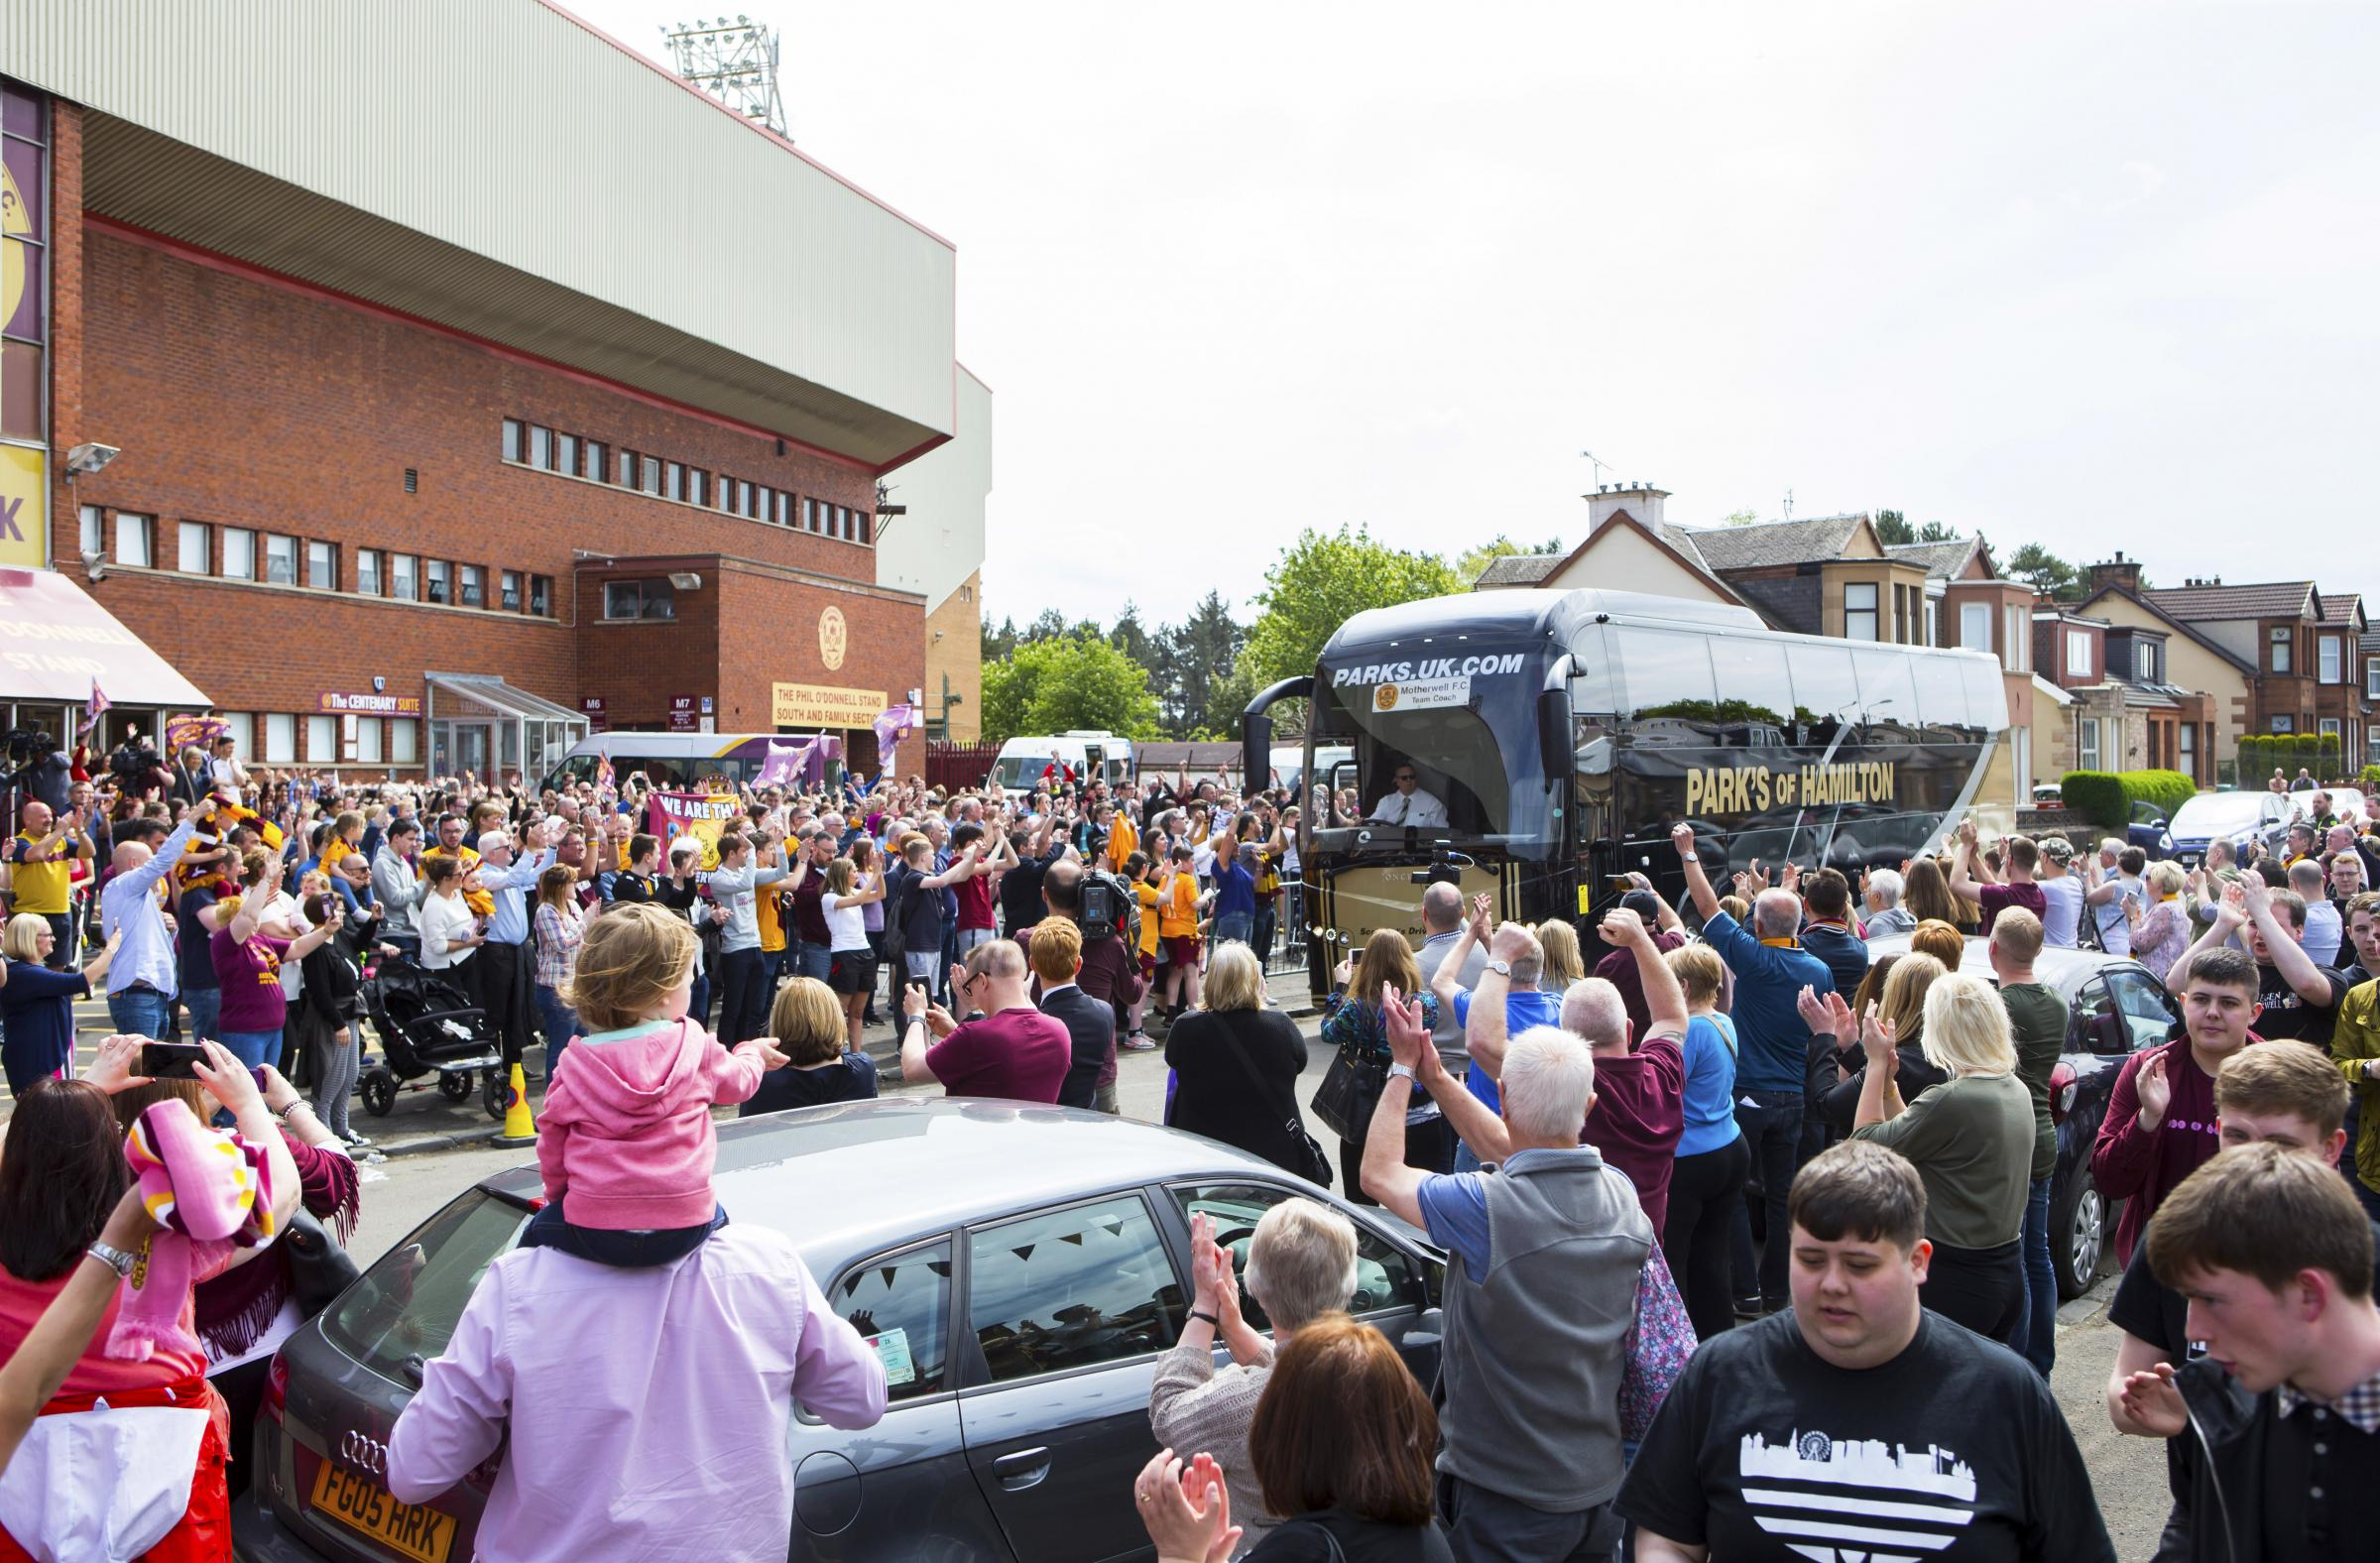 18/05/18. FIR PARK - MOTHERWELL. The Motherwell team are waved off by fans as they depart for the Scottish Cup Final..